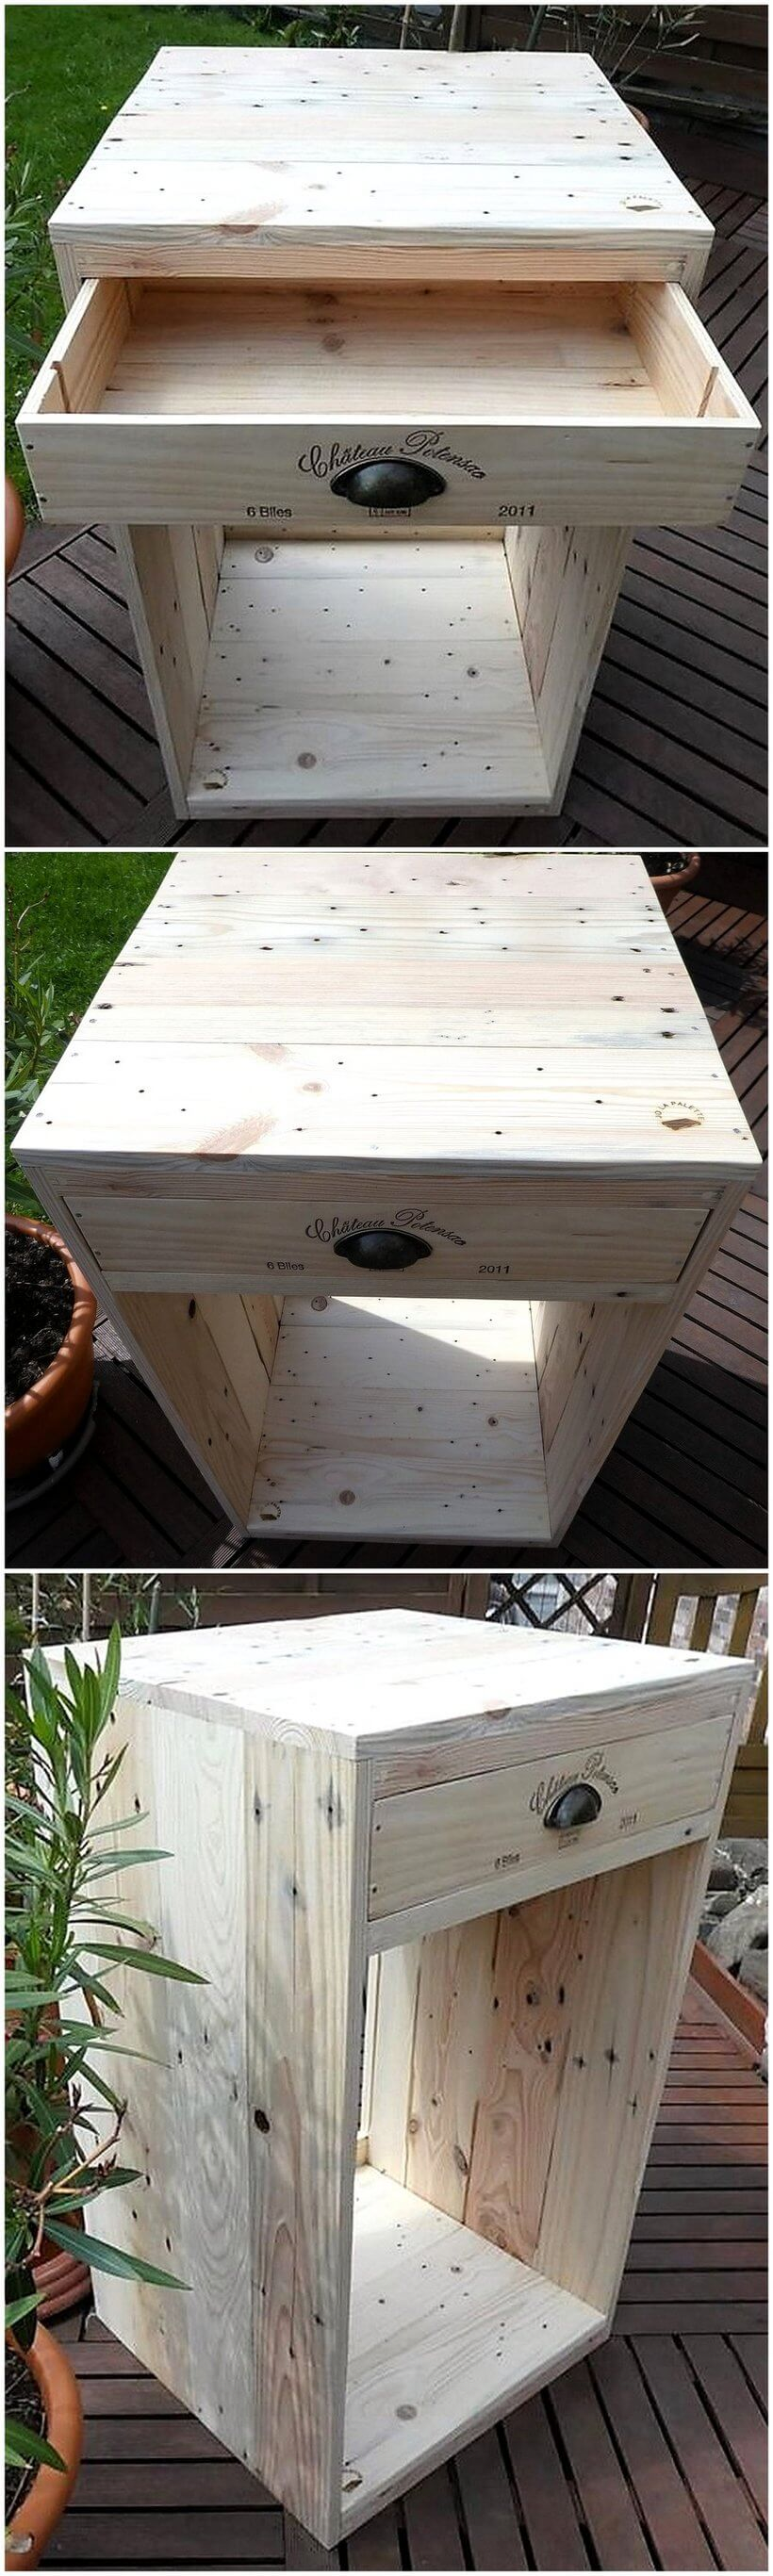 recycled pallets side table idea